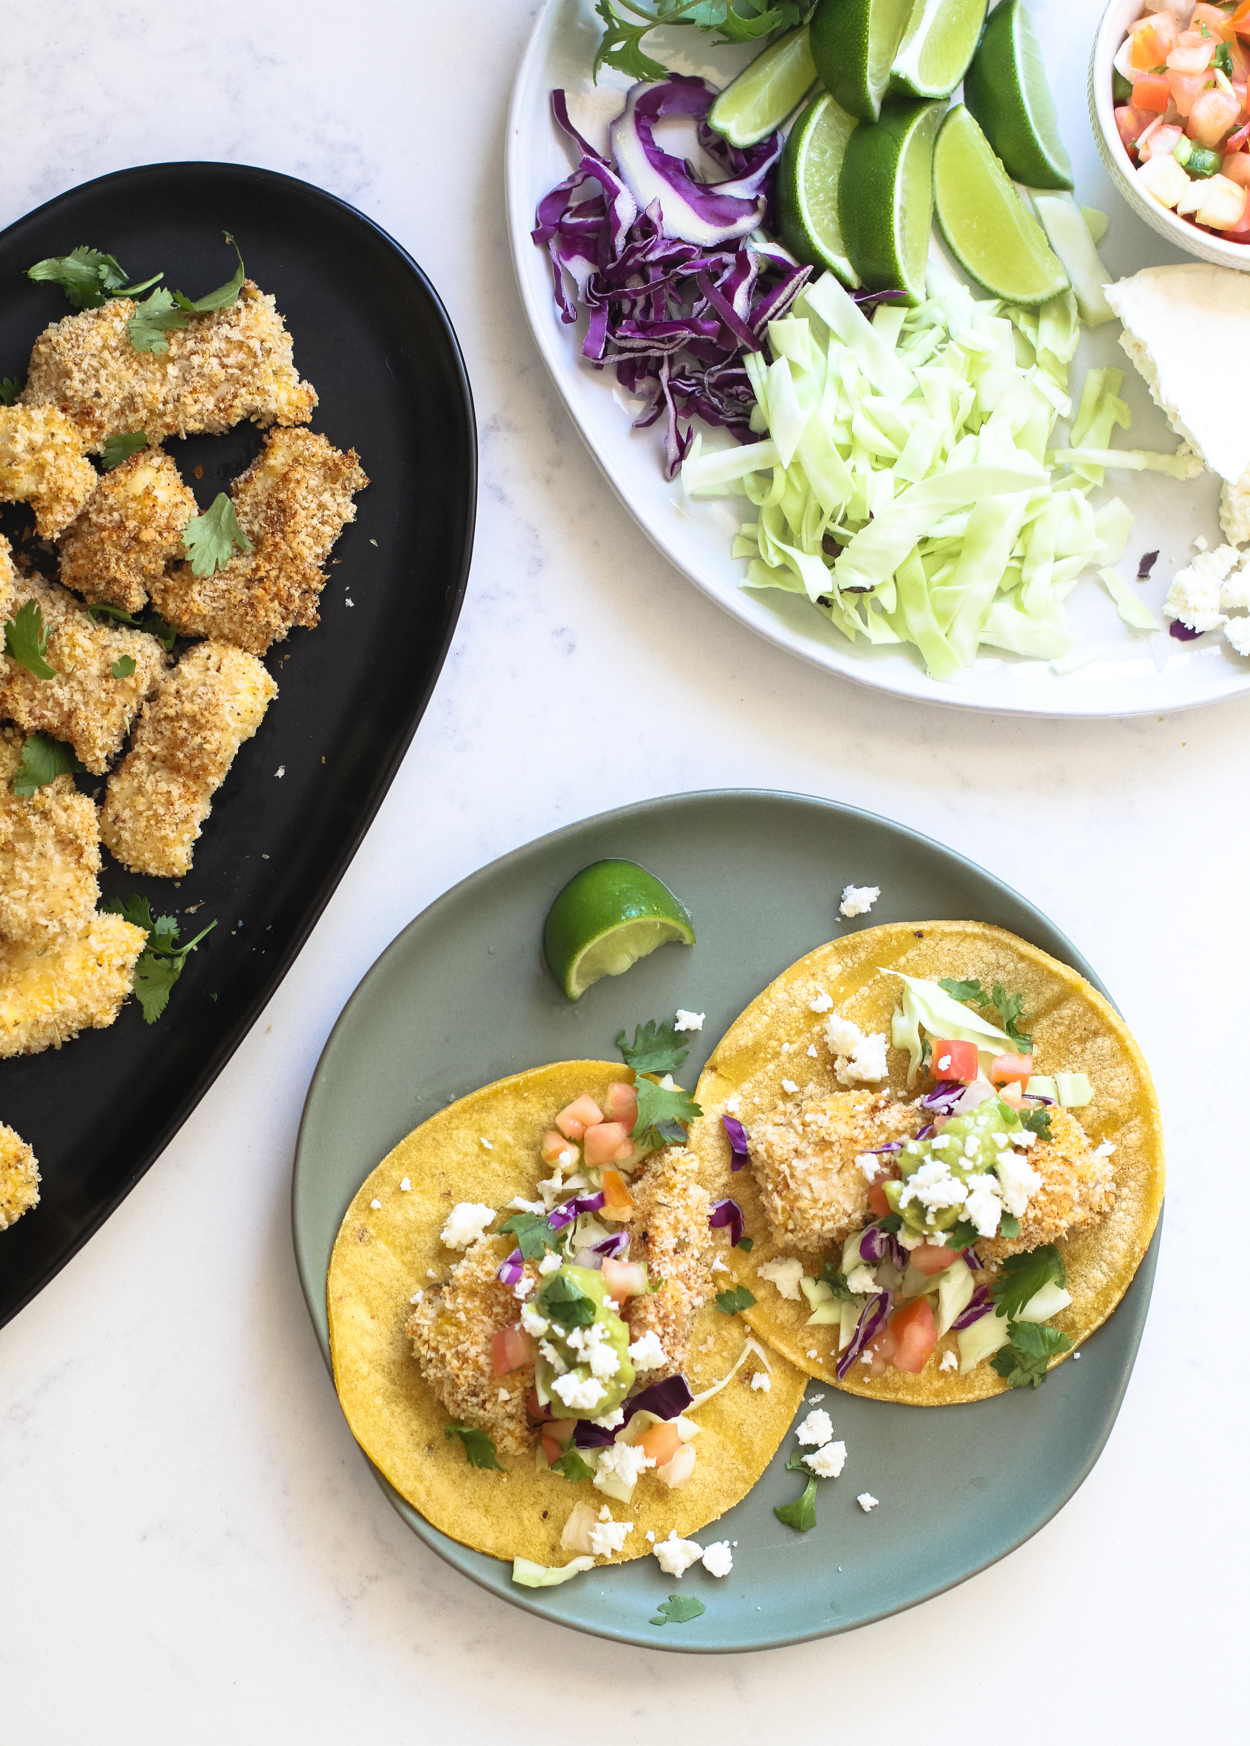 two crispy baked fish tacos on a round blue plate with a lime wedge to the side. A black plate with crispy cod pieces and a white plate with taco toppings in the background